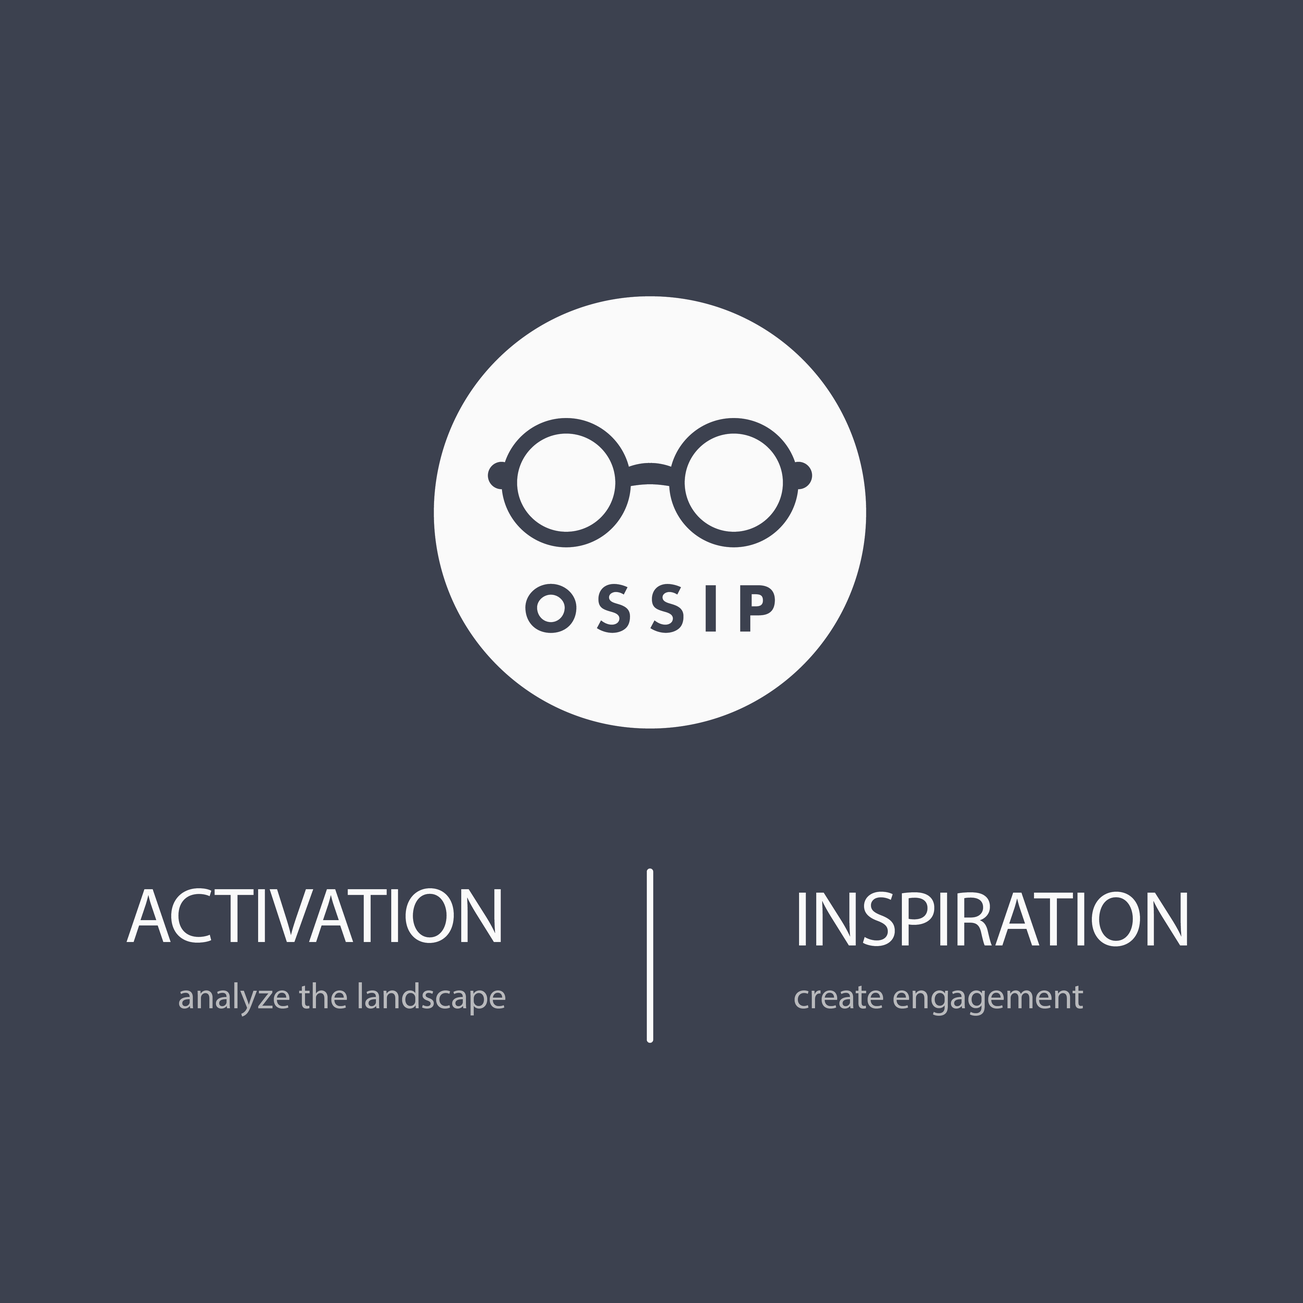 Ossip-Sales-Training-Deck.png